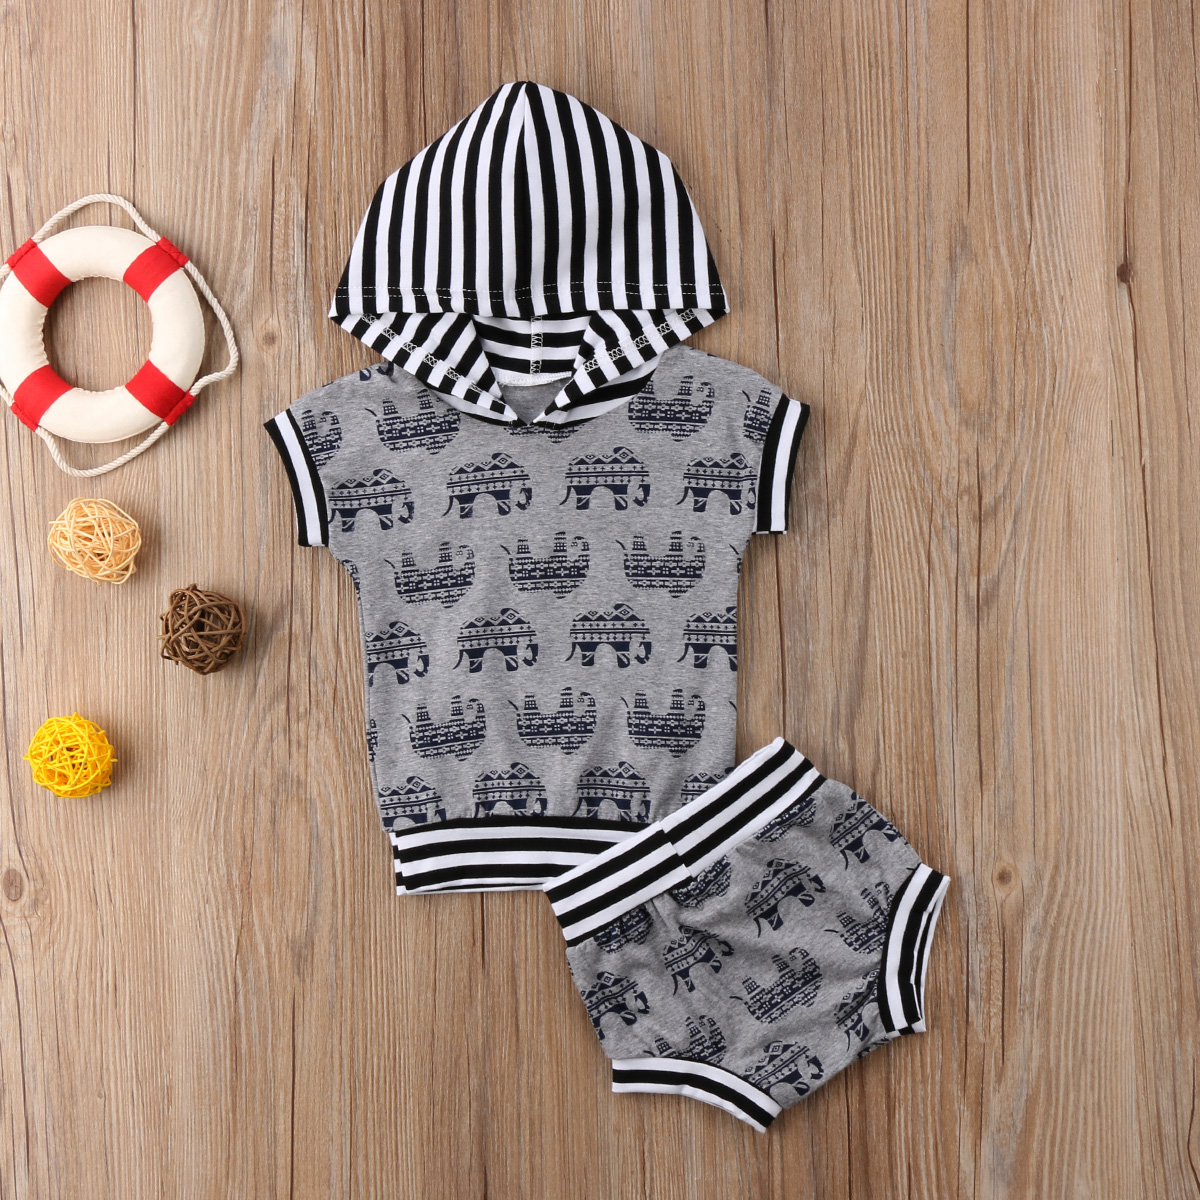 Casual Newborn Kids Baby Boys Clothes Set Cute Elephant Hooded Tops T-Shirt Shorts Outfits infant boys Clothes